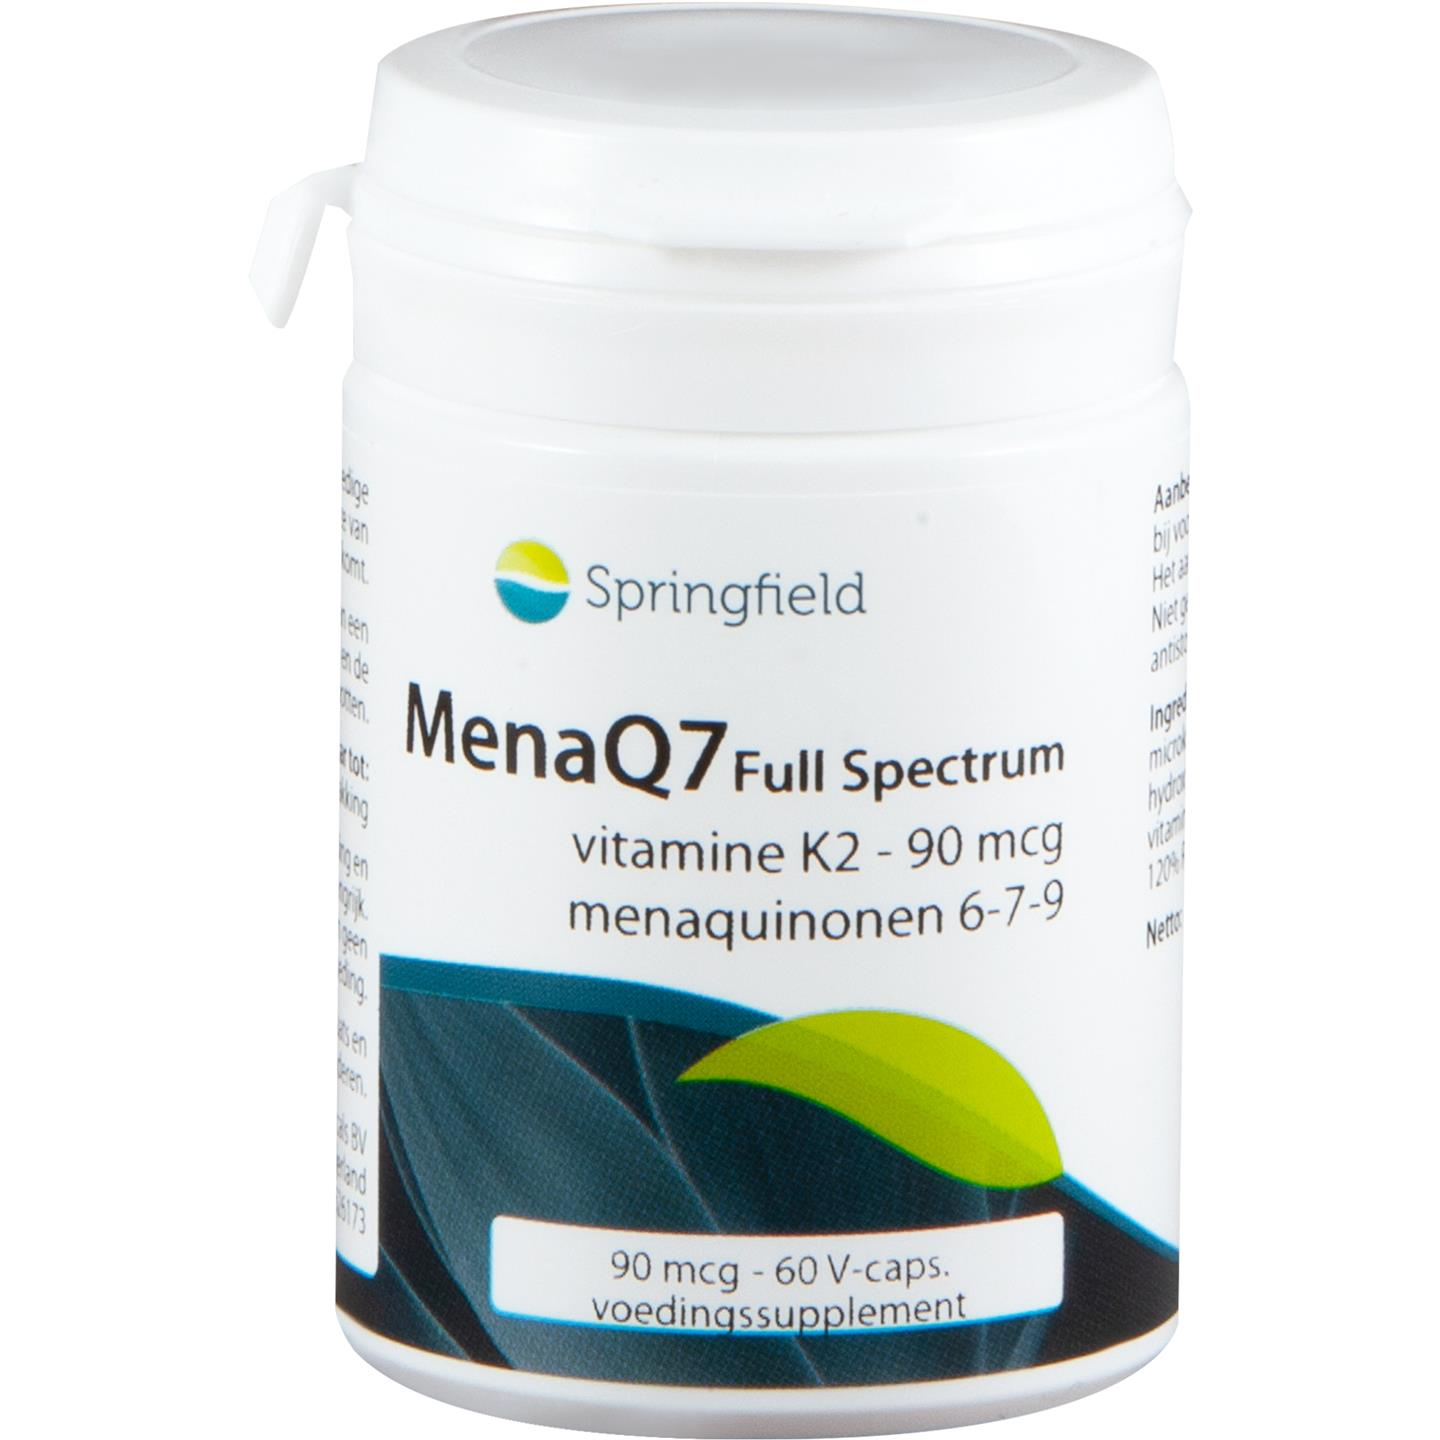 MenaQ7 Full Spectrum